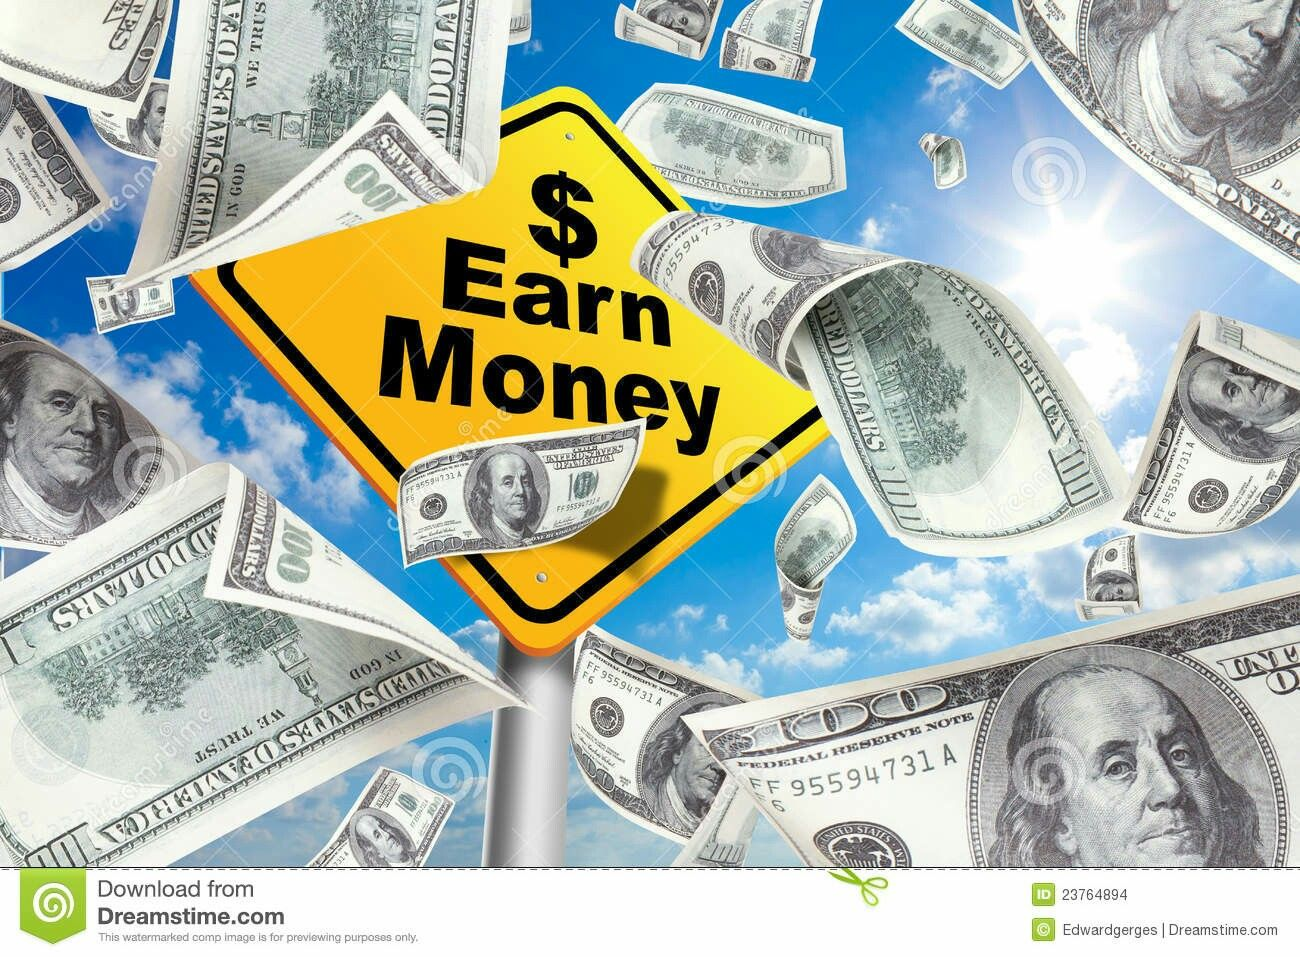 Daily earning 2030 online make money at home signup